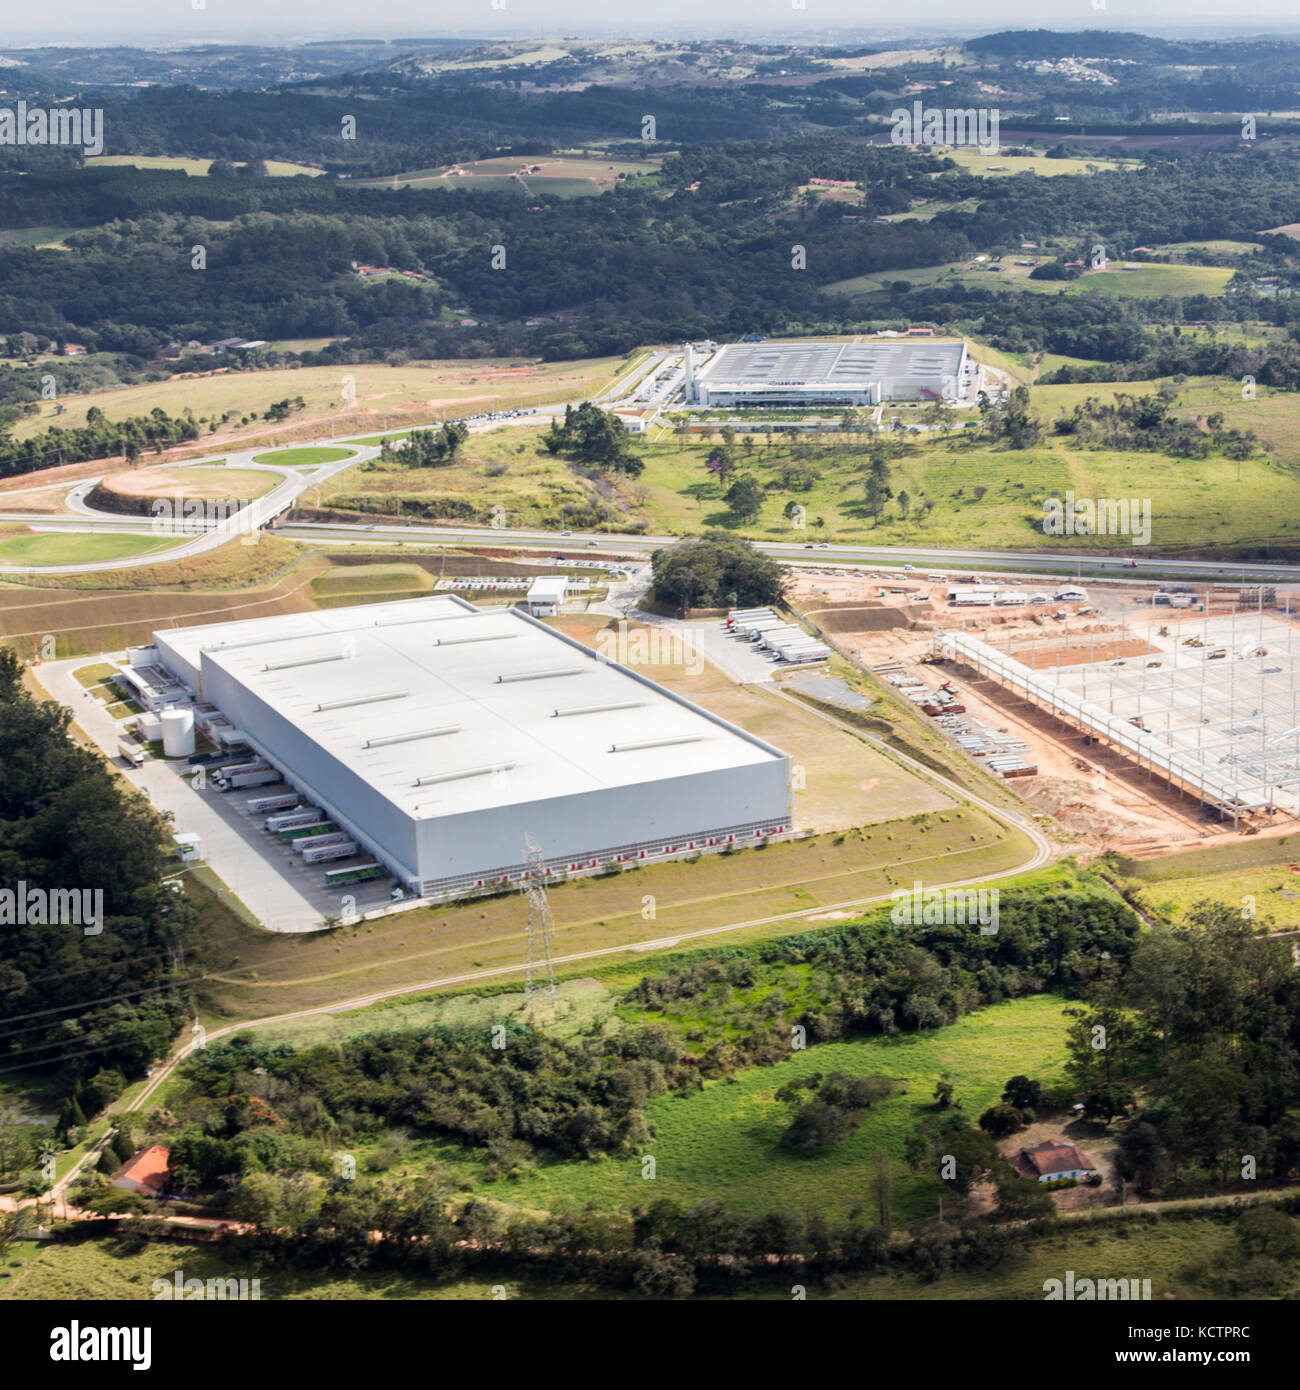 aerial view of Natura Distribution Center near Jundiaí - Brazil - Stock Image